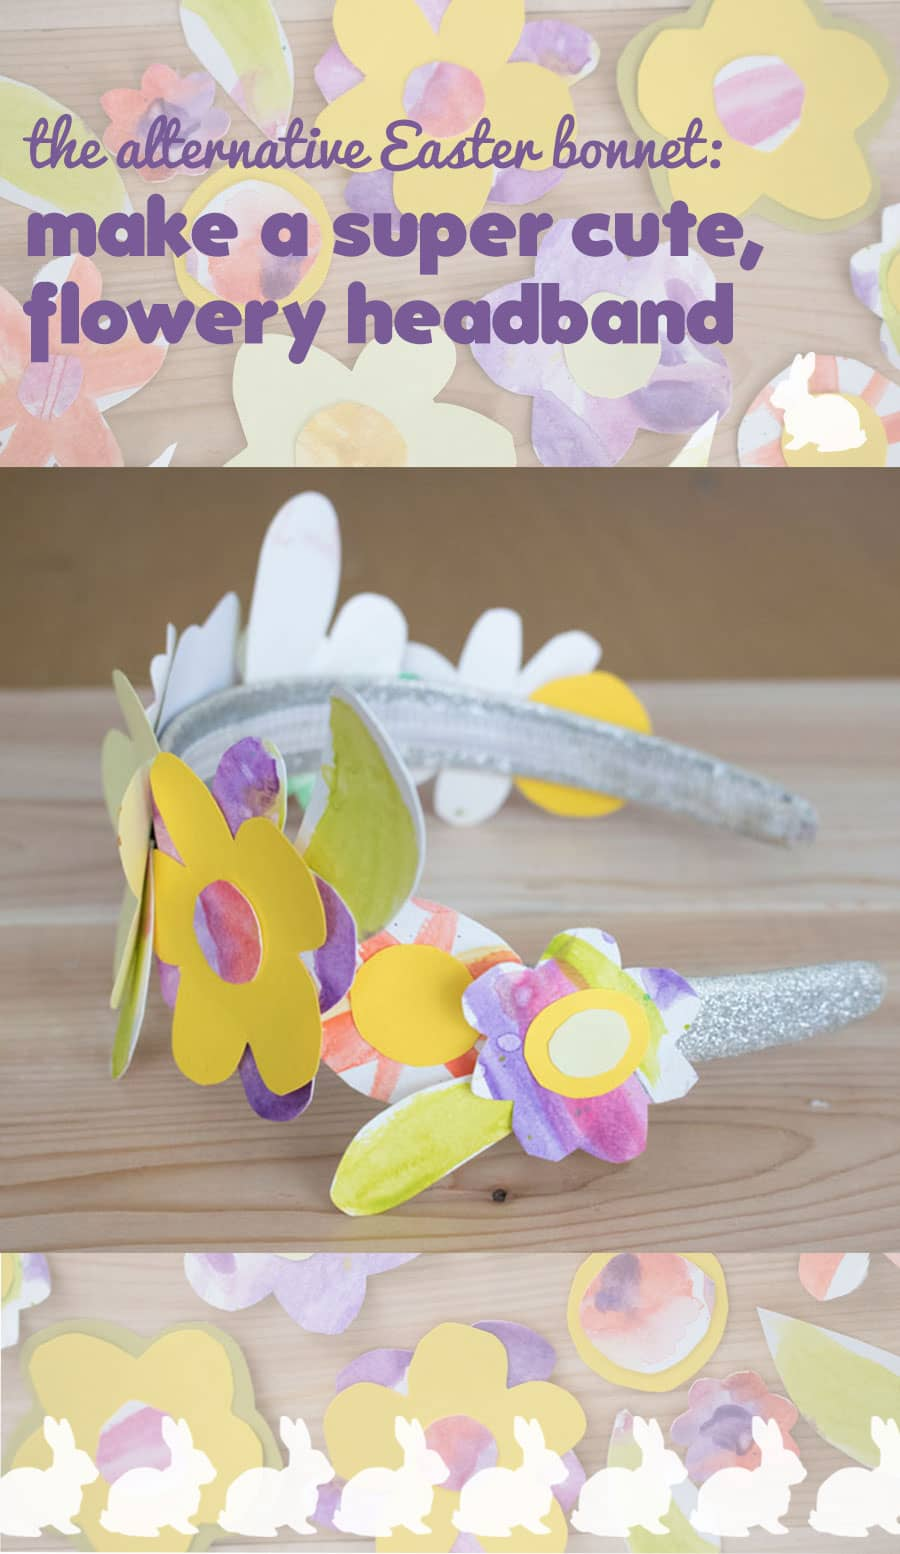 How to make an alternative Easter bonnet: Make this cute, flowery headband.